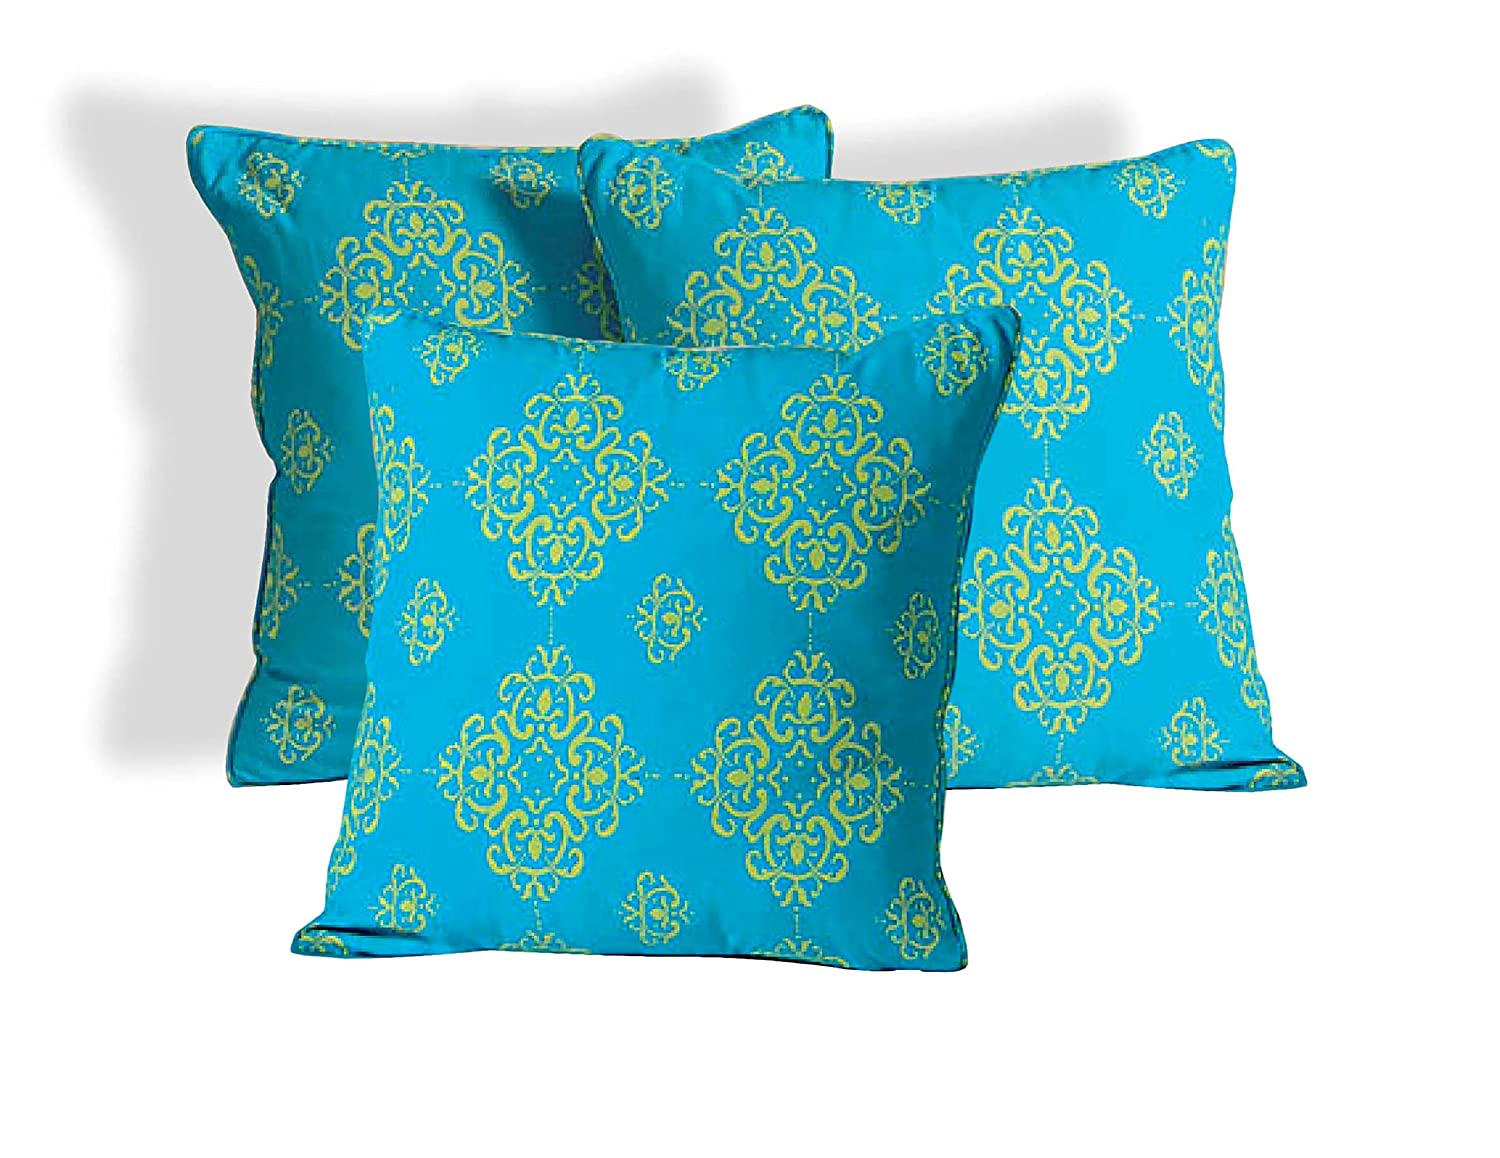 Tremendous Buy Shalinindia Spring Decor Floral Print Turquoise Colour Ncnpc Chair Design For Home Ncnpcorg